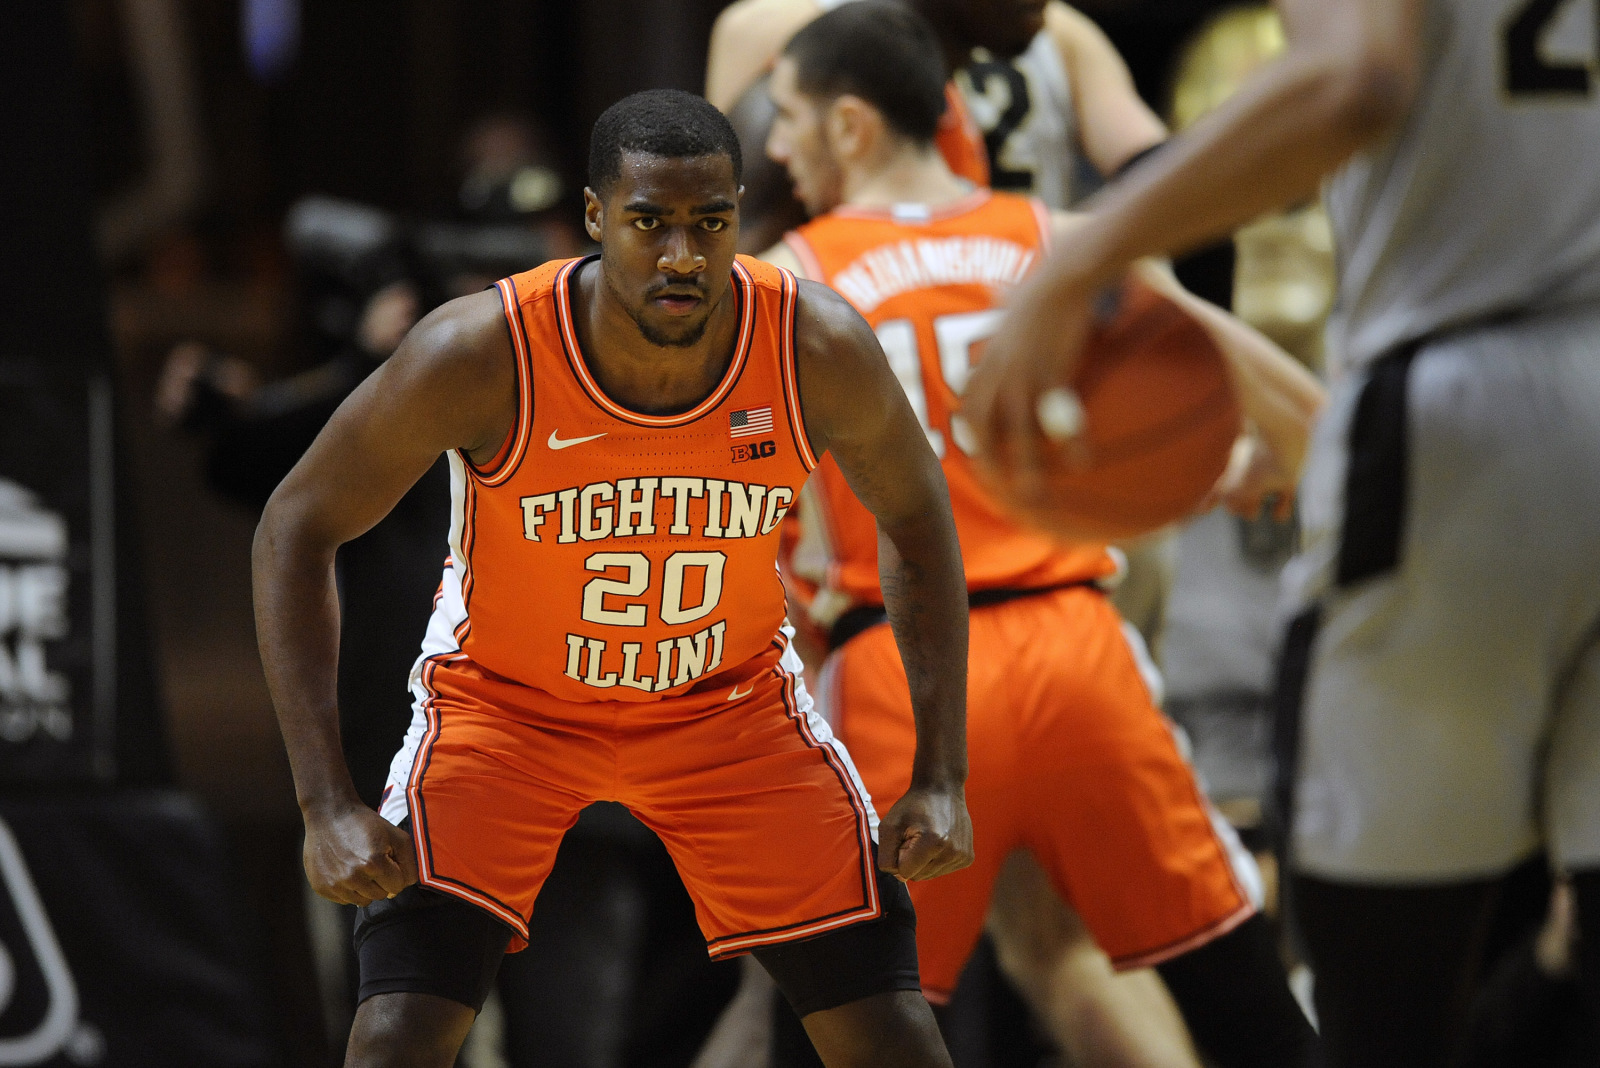 Illinois Basketball: 3 observations from the Illini win over Penn State